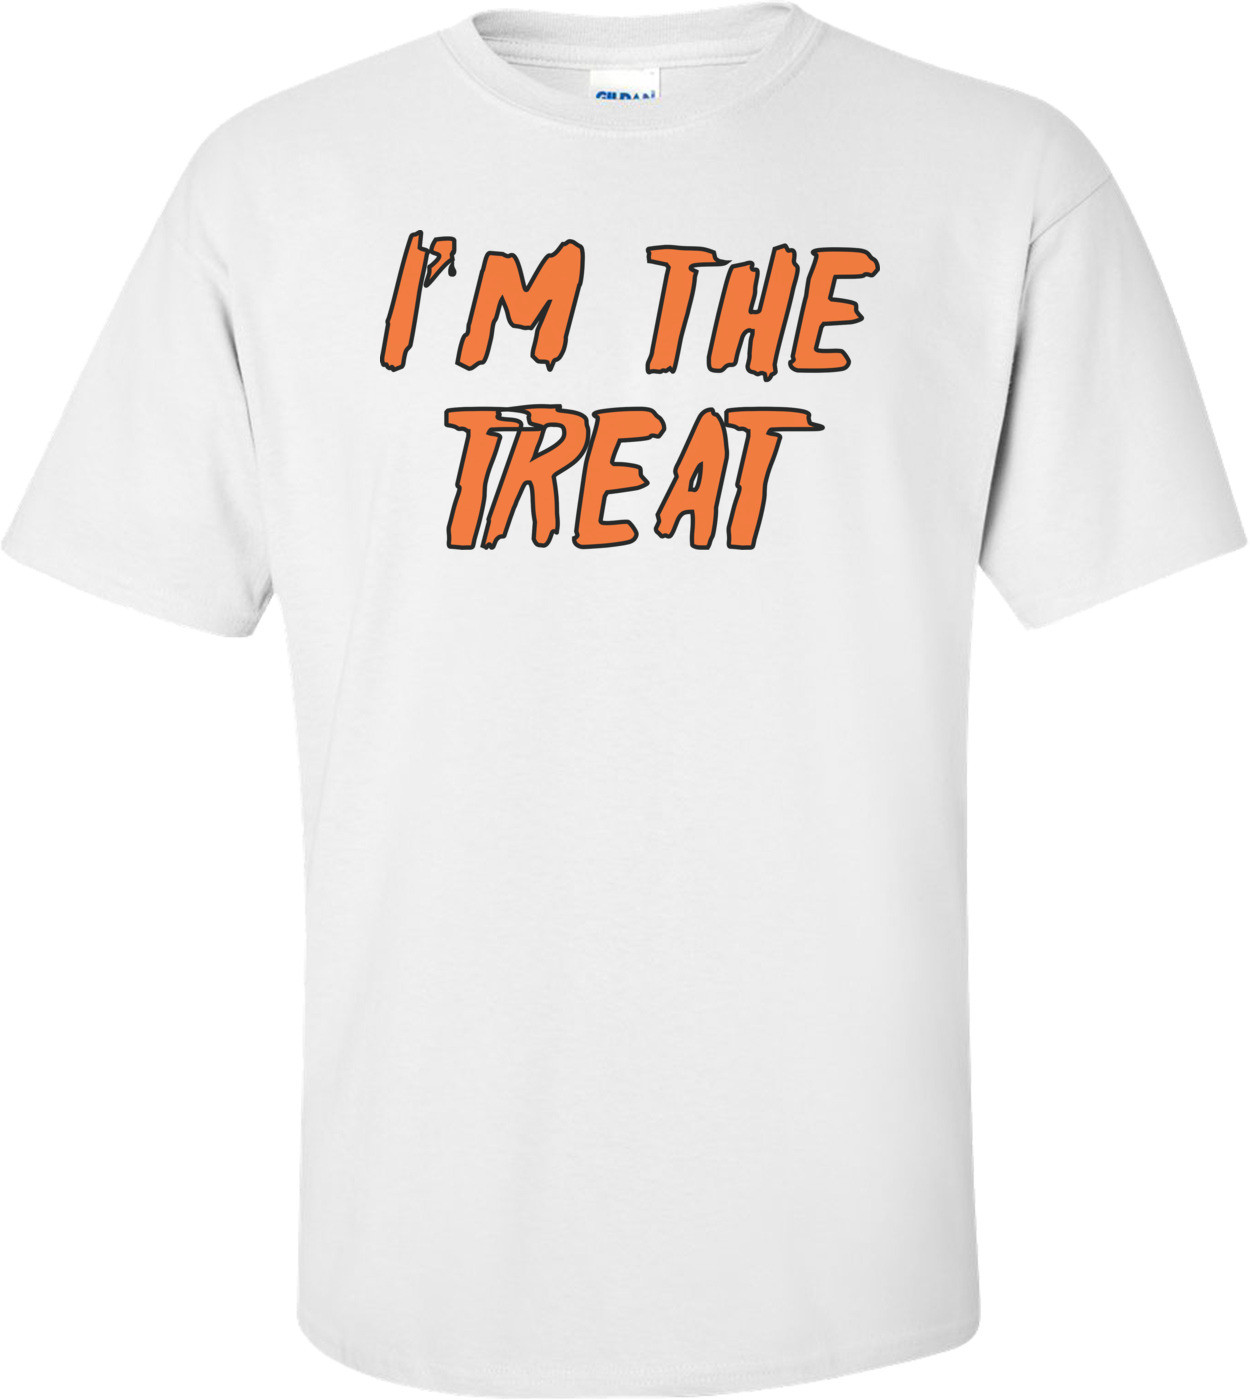 I'm The Treat Halloween T-shirt